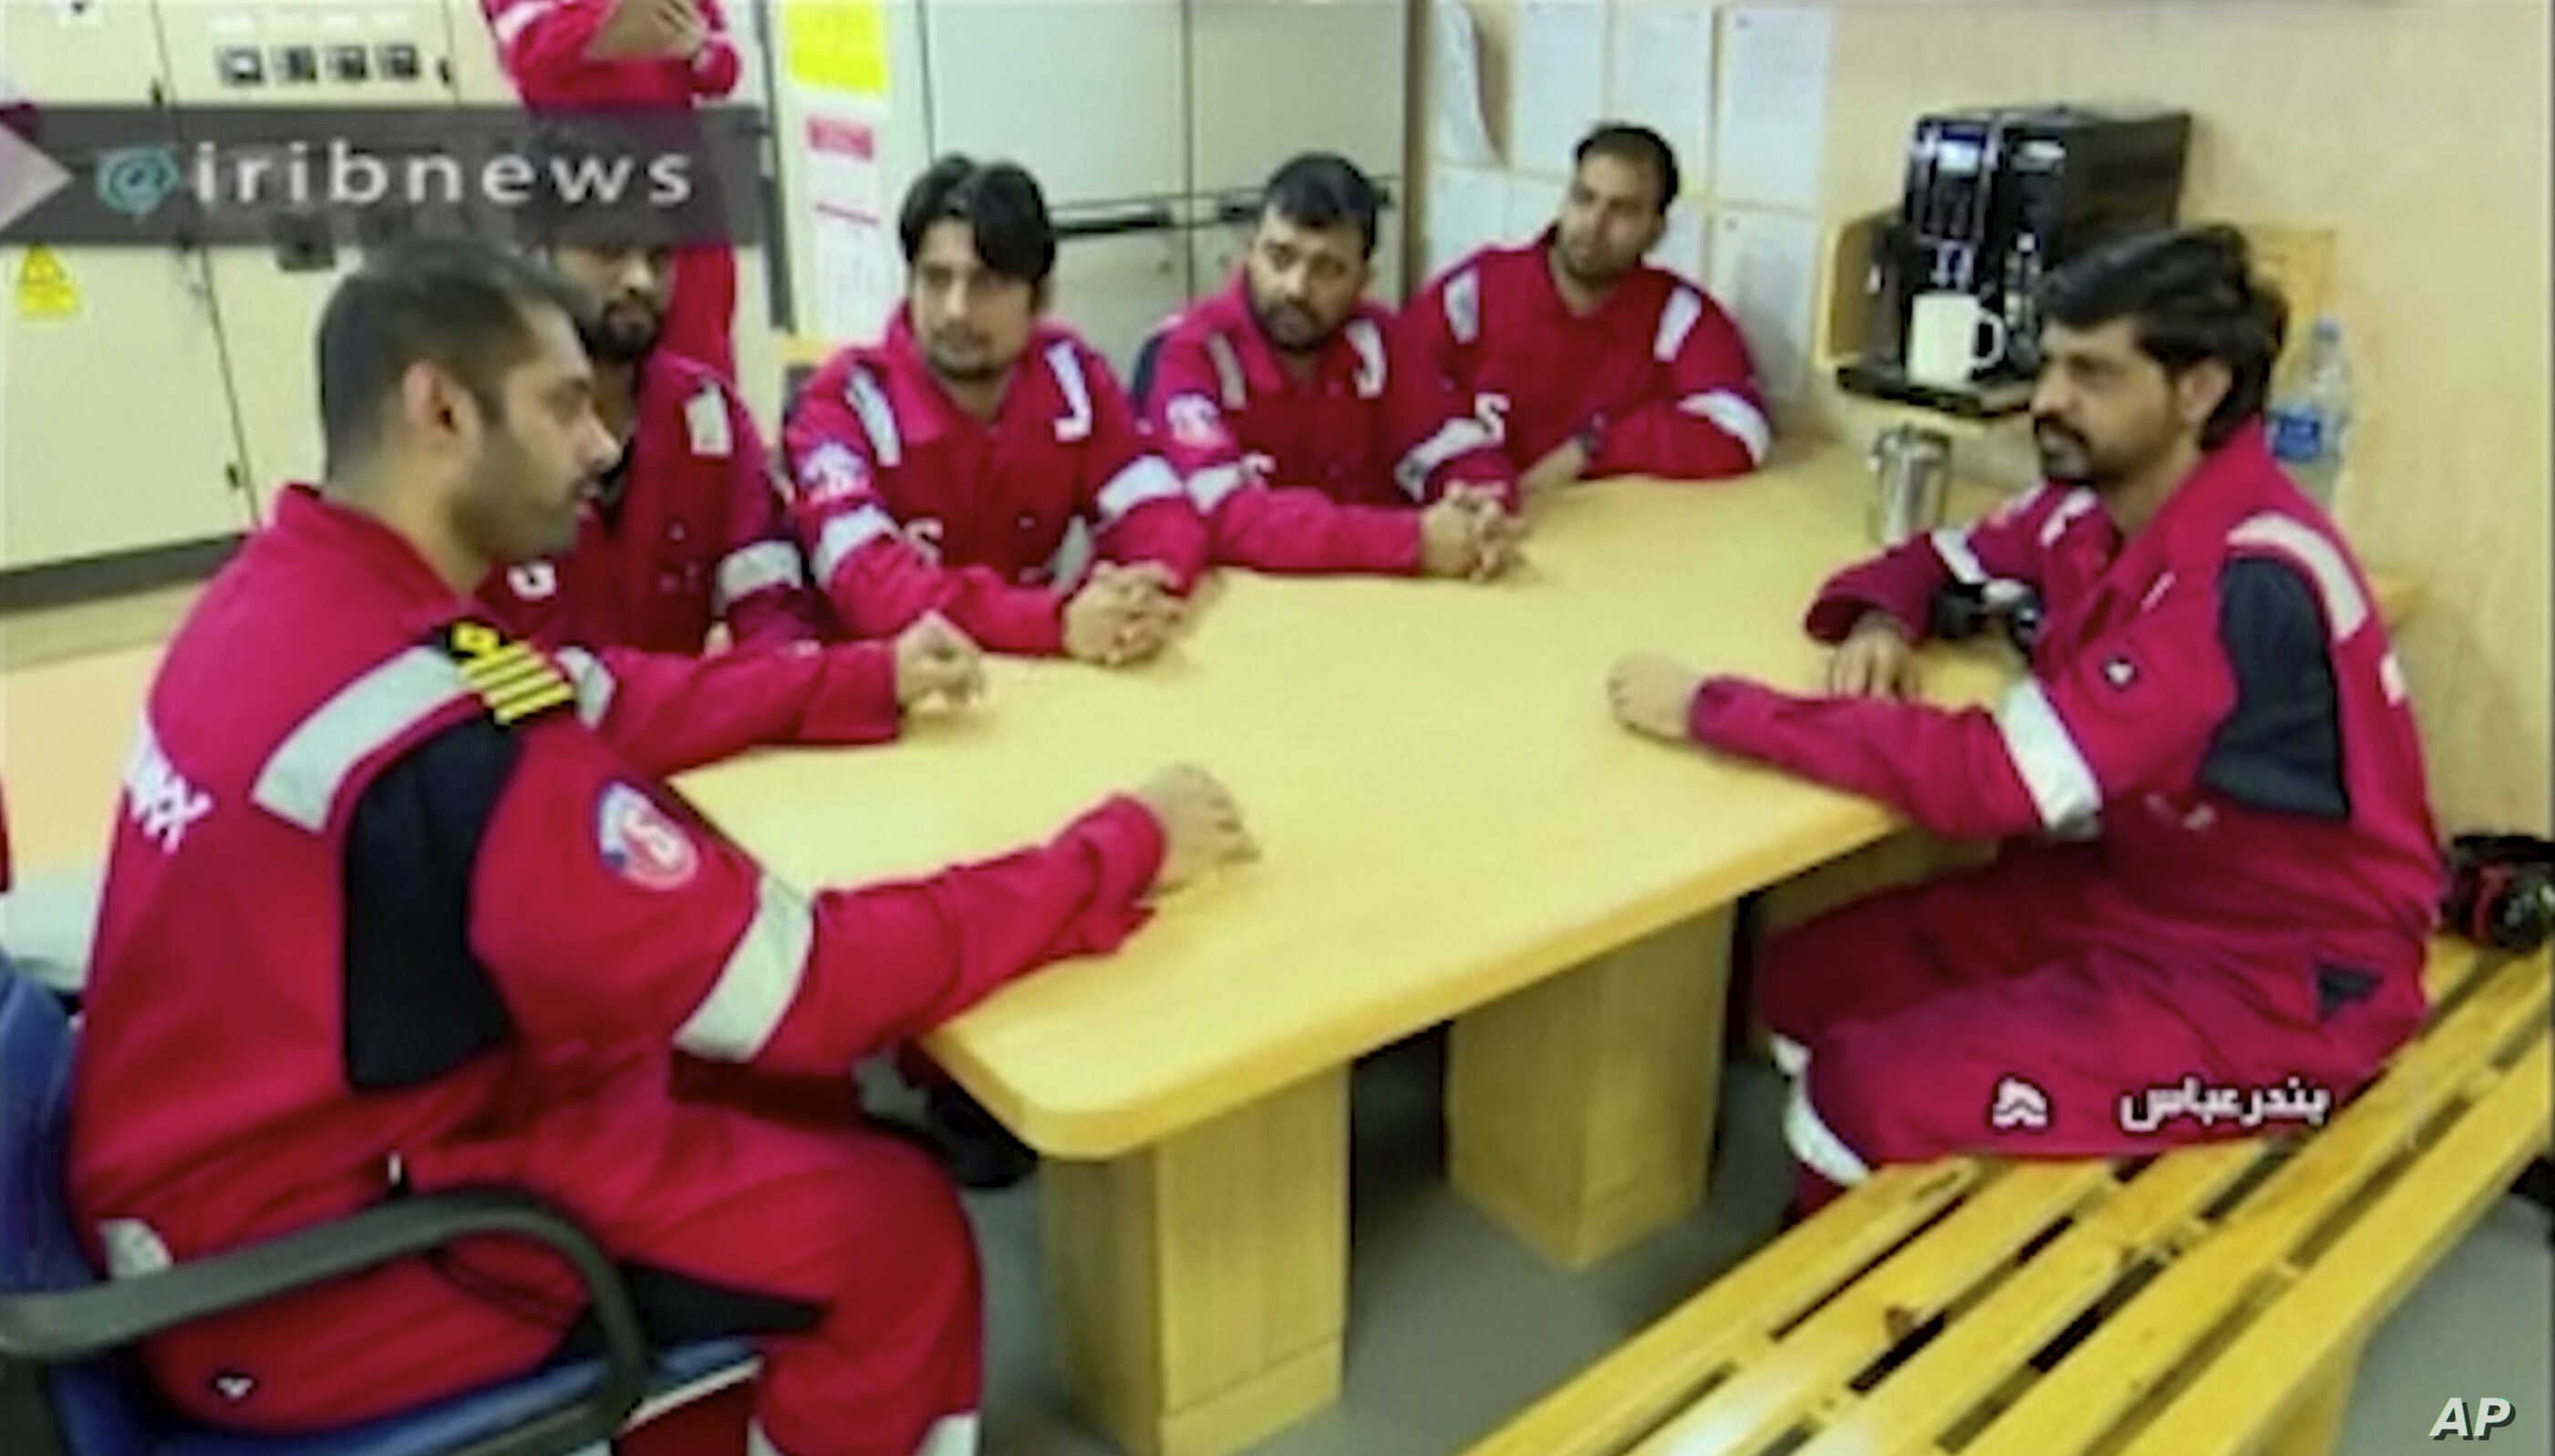 This photo released by state-run IRIB News Agency, which aired July 22, 2019, shows various crew members of the British-flagged tanker Stena Impero, which was seized by Tehran in the Strait of Hormuz on Friday, during a meeting.